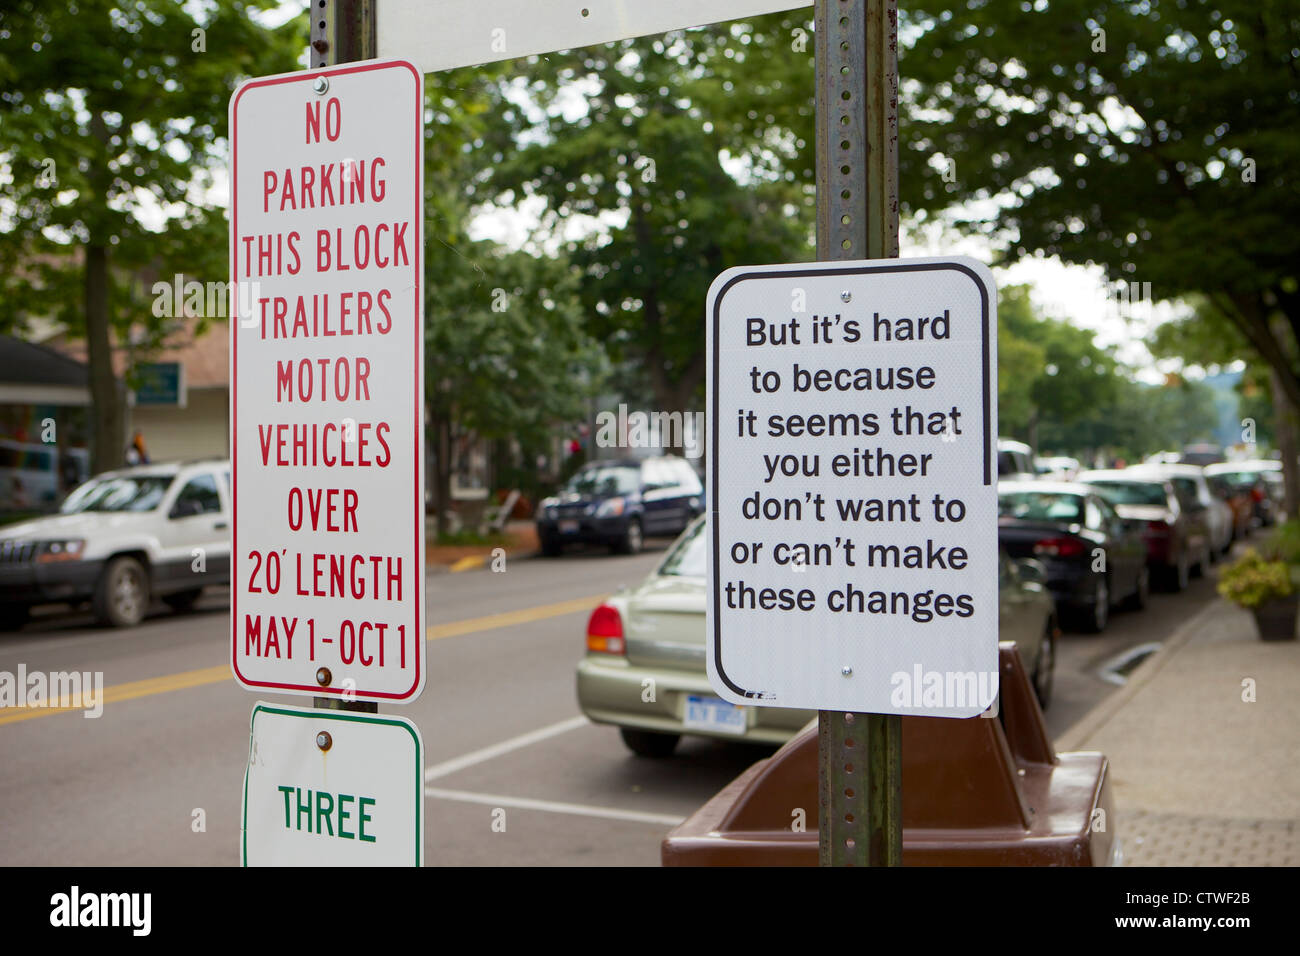 Humorous  street sign commenting on human resistance to change - Stock Image